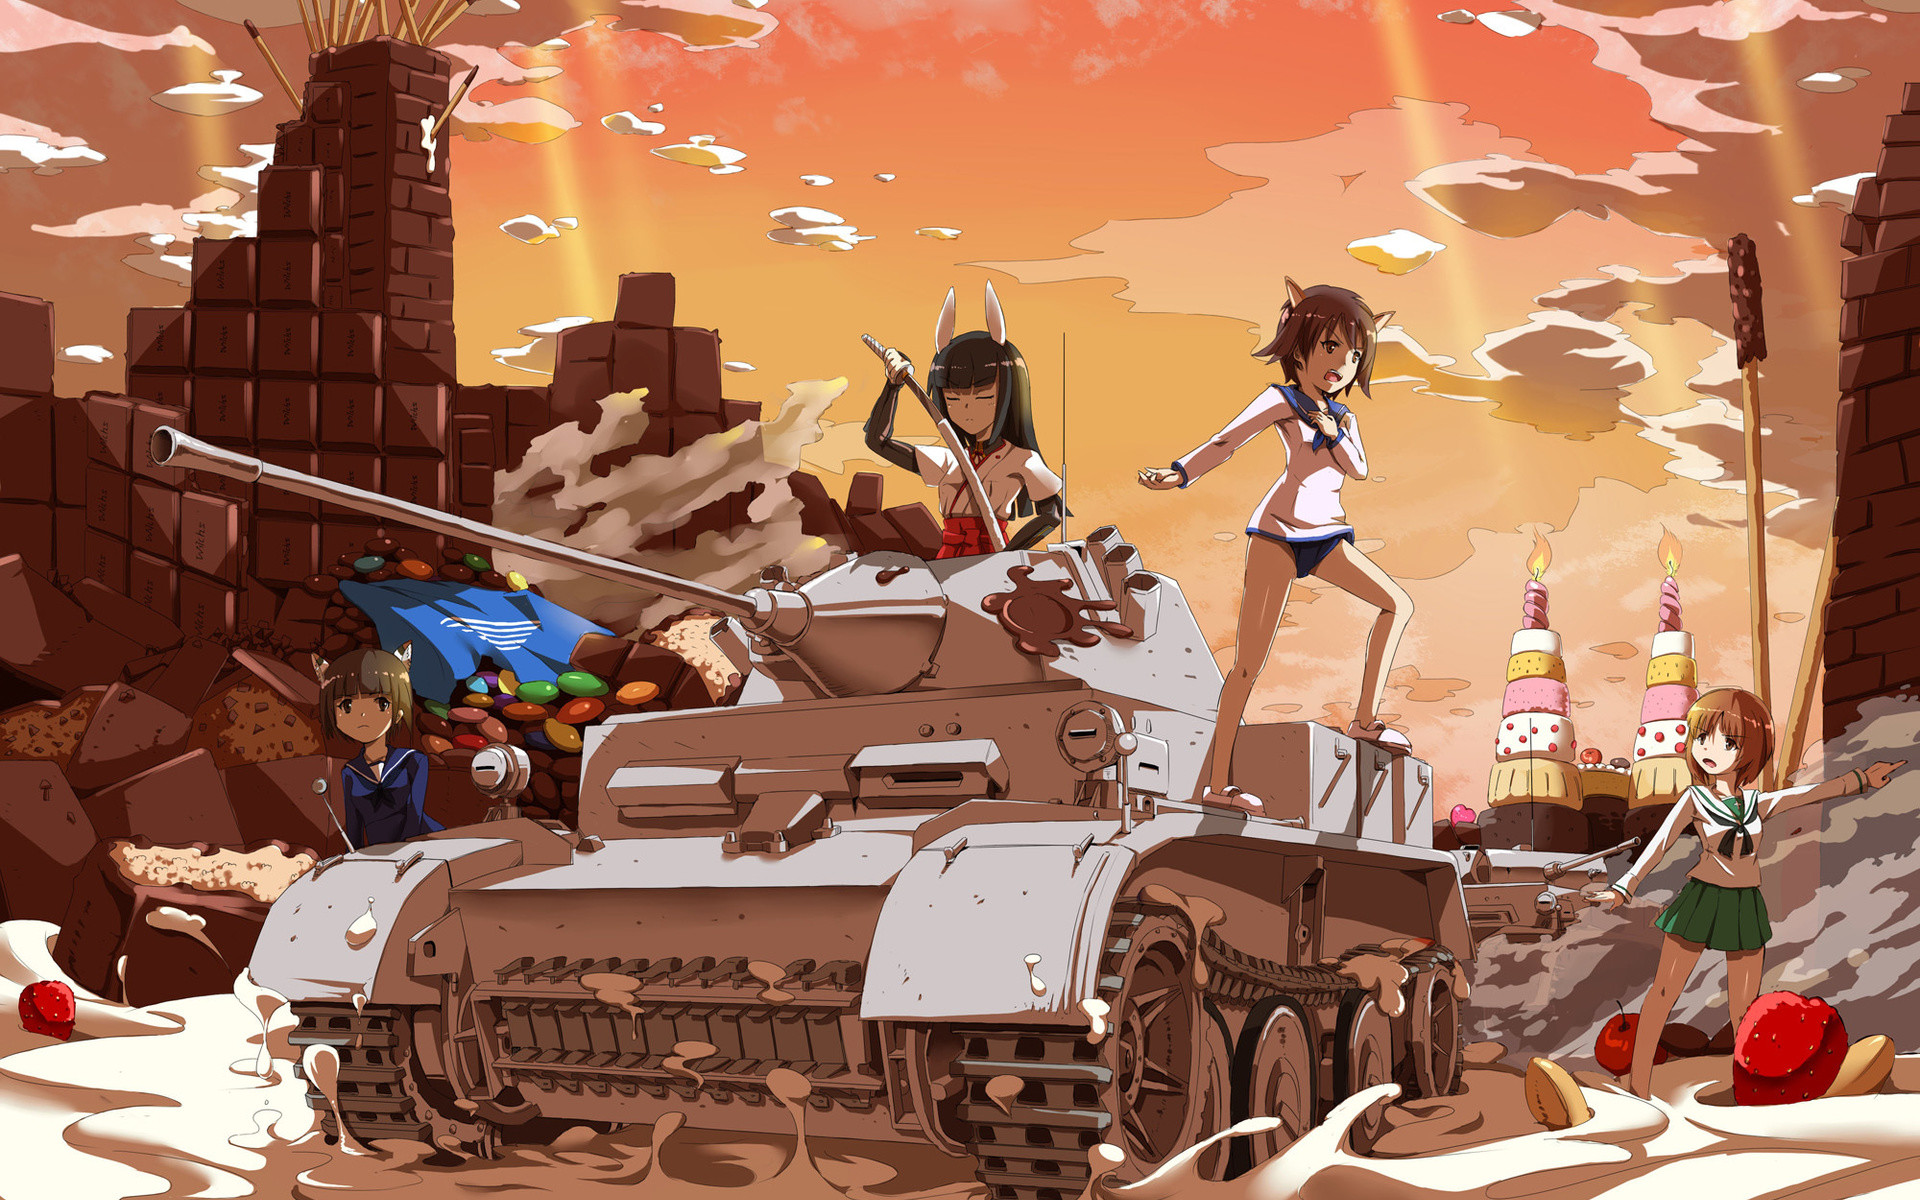 1920x1200 Girls And Tanks, Girls Und Panzer, Anime, Art, Sirills, Strike Witches